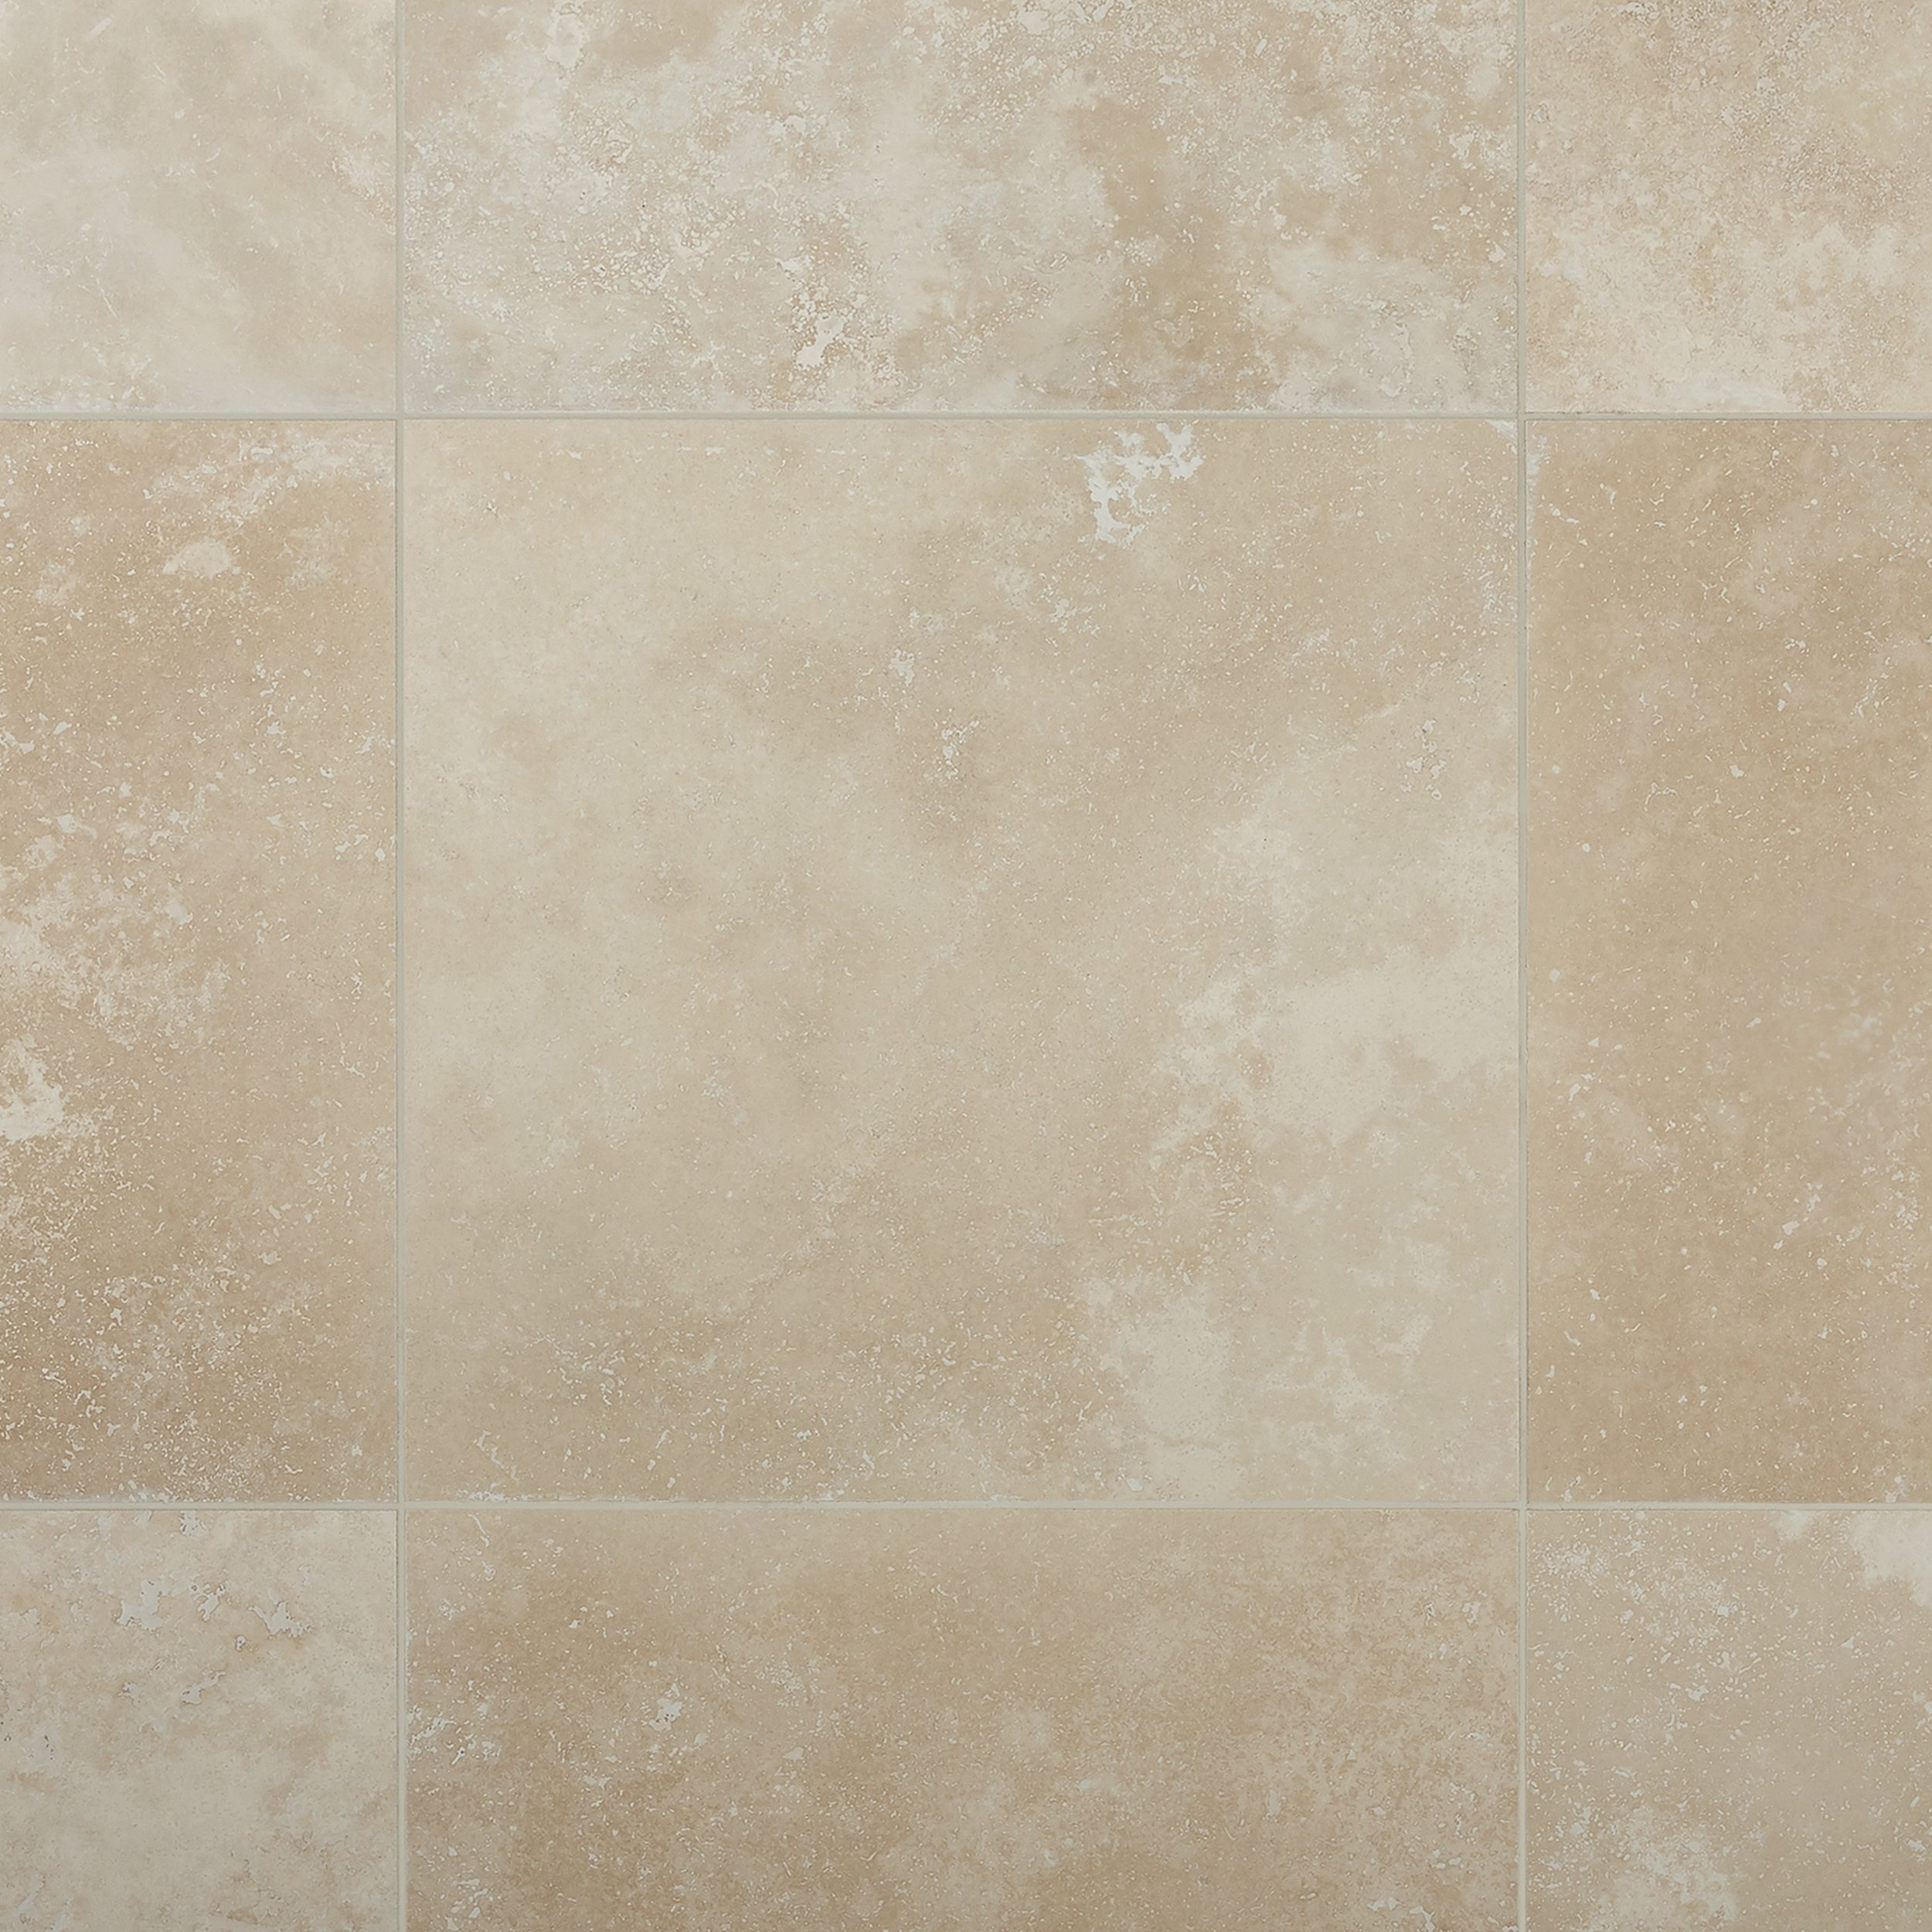 Ivory coast brushed travertine tile · tresana travertino